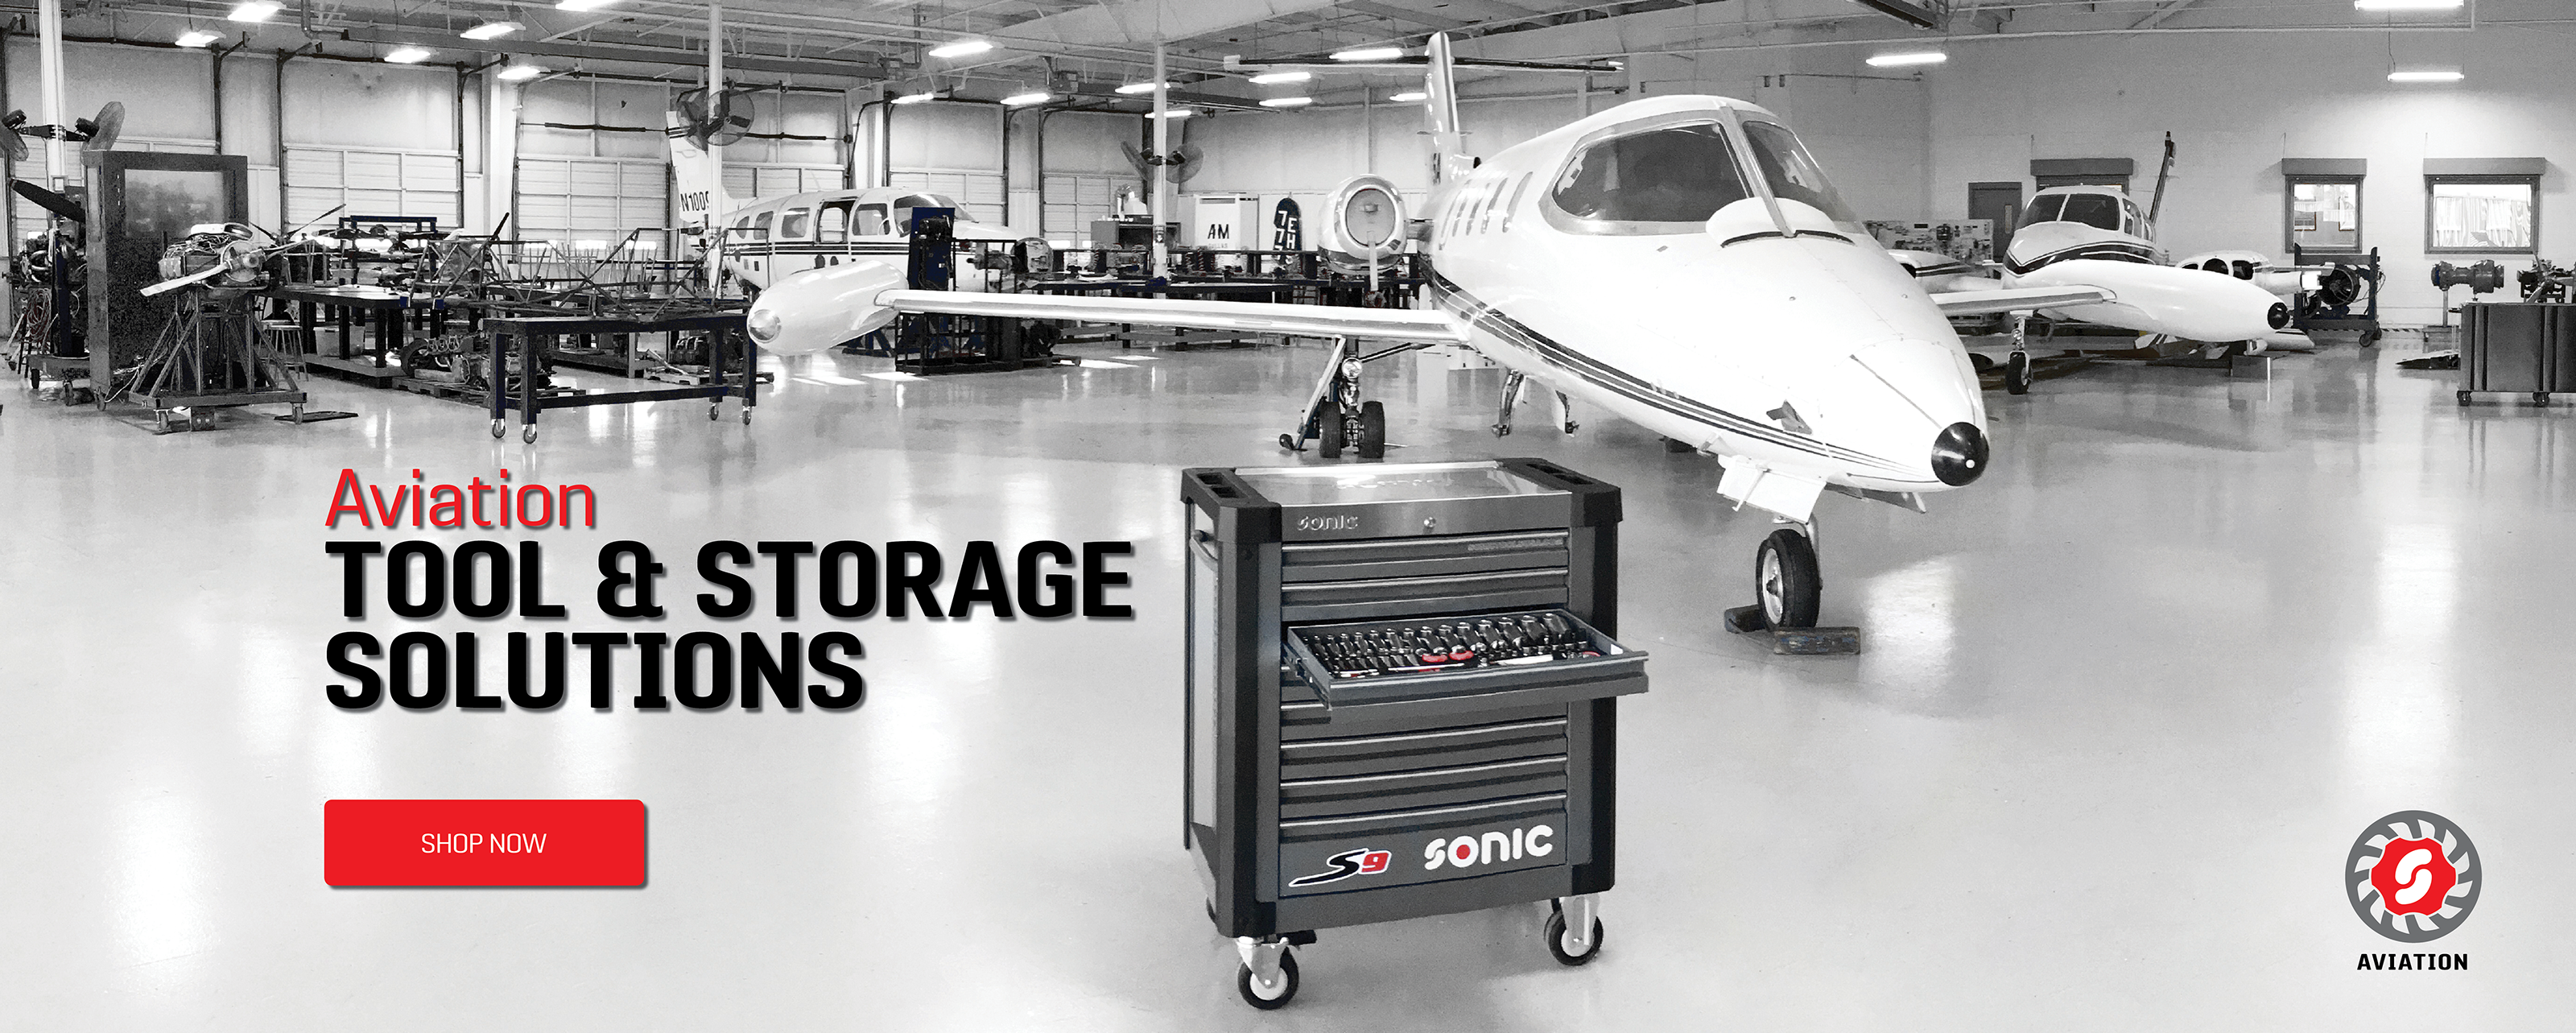 Our Aviation A and P Solutions are designed and manufactured by Sonic Tools to fill the missing piece for aviation technicians and students who are starting their journey as A and P technicians. We created comprehensive solutions with direction from aviat